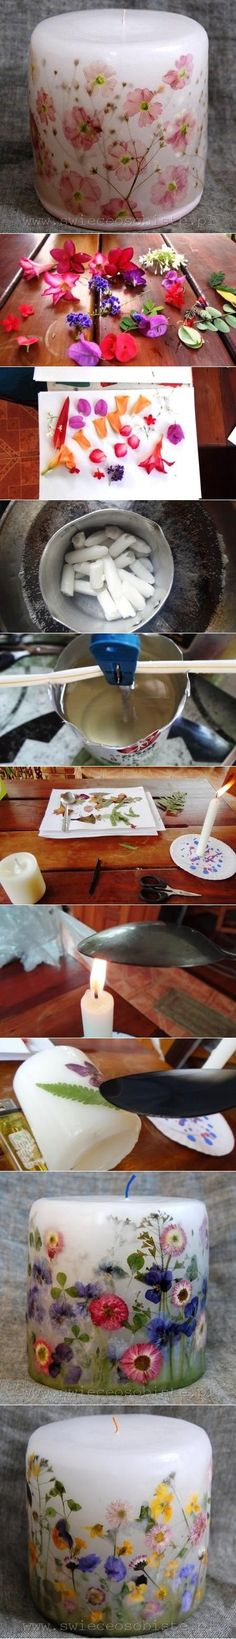 Diy Flower Candle - #diy